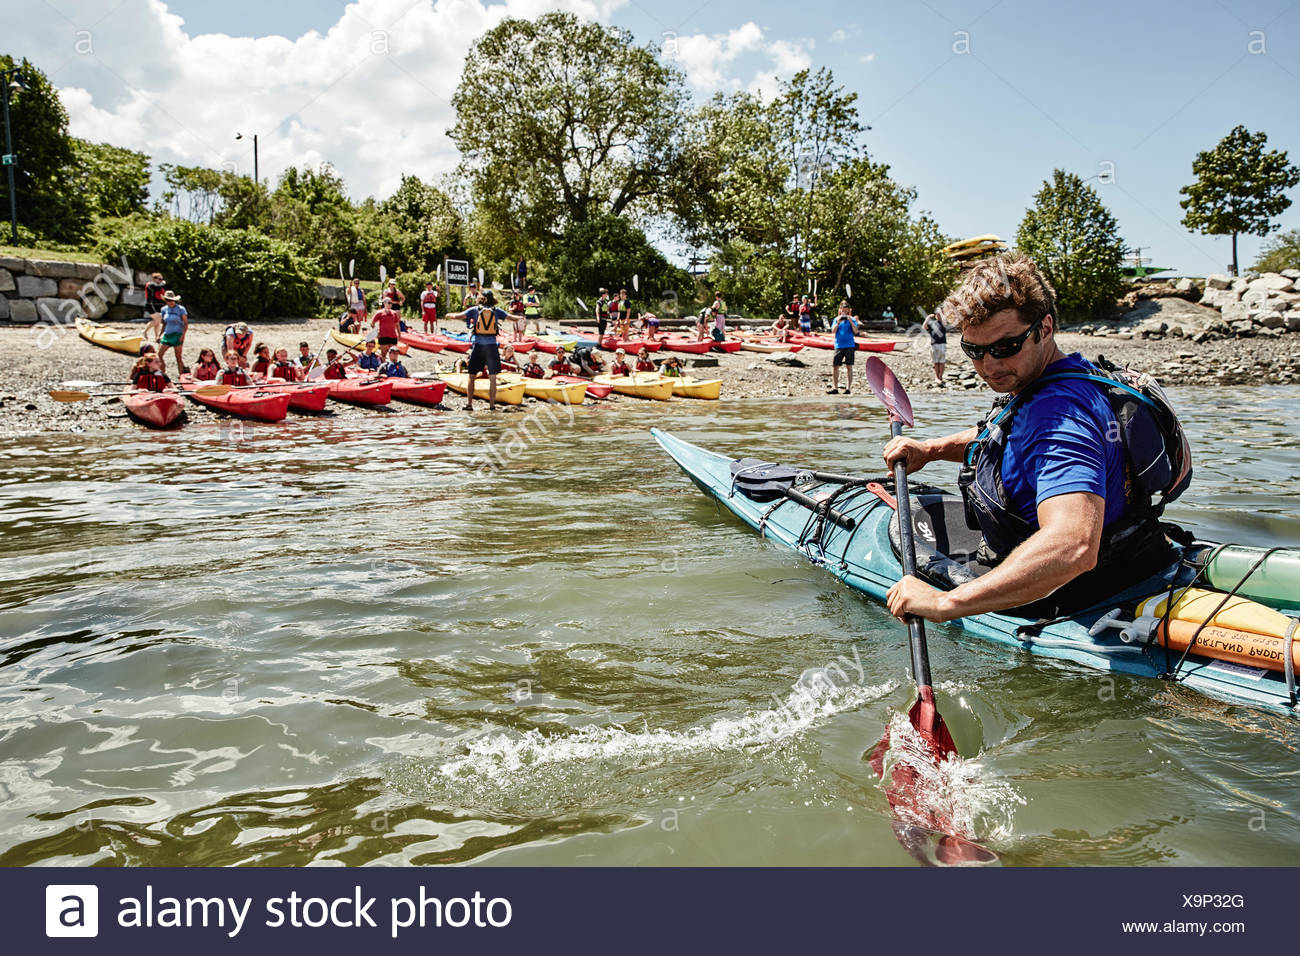 Kayaking instructor paddling in front of students sitting in kayaks, Portland, Maine, USA - Stock Image